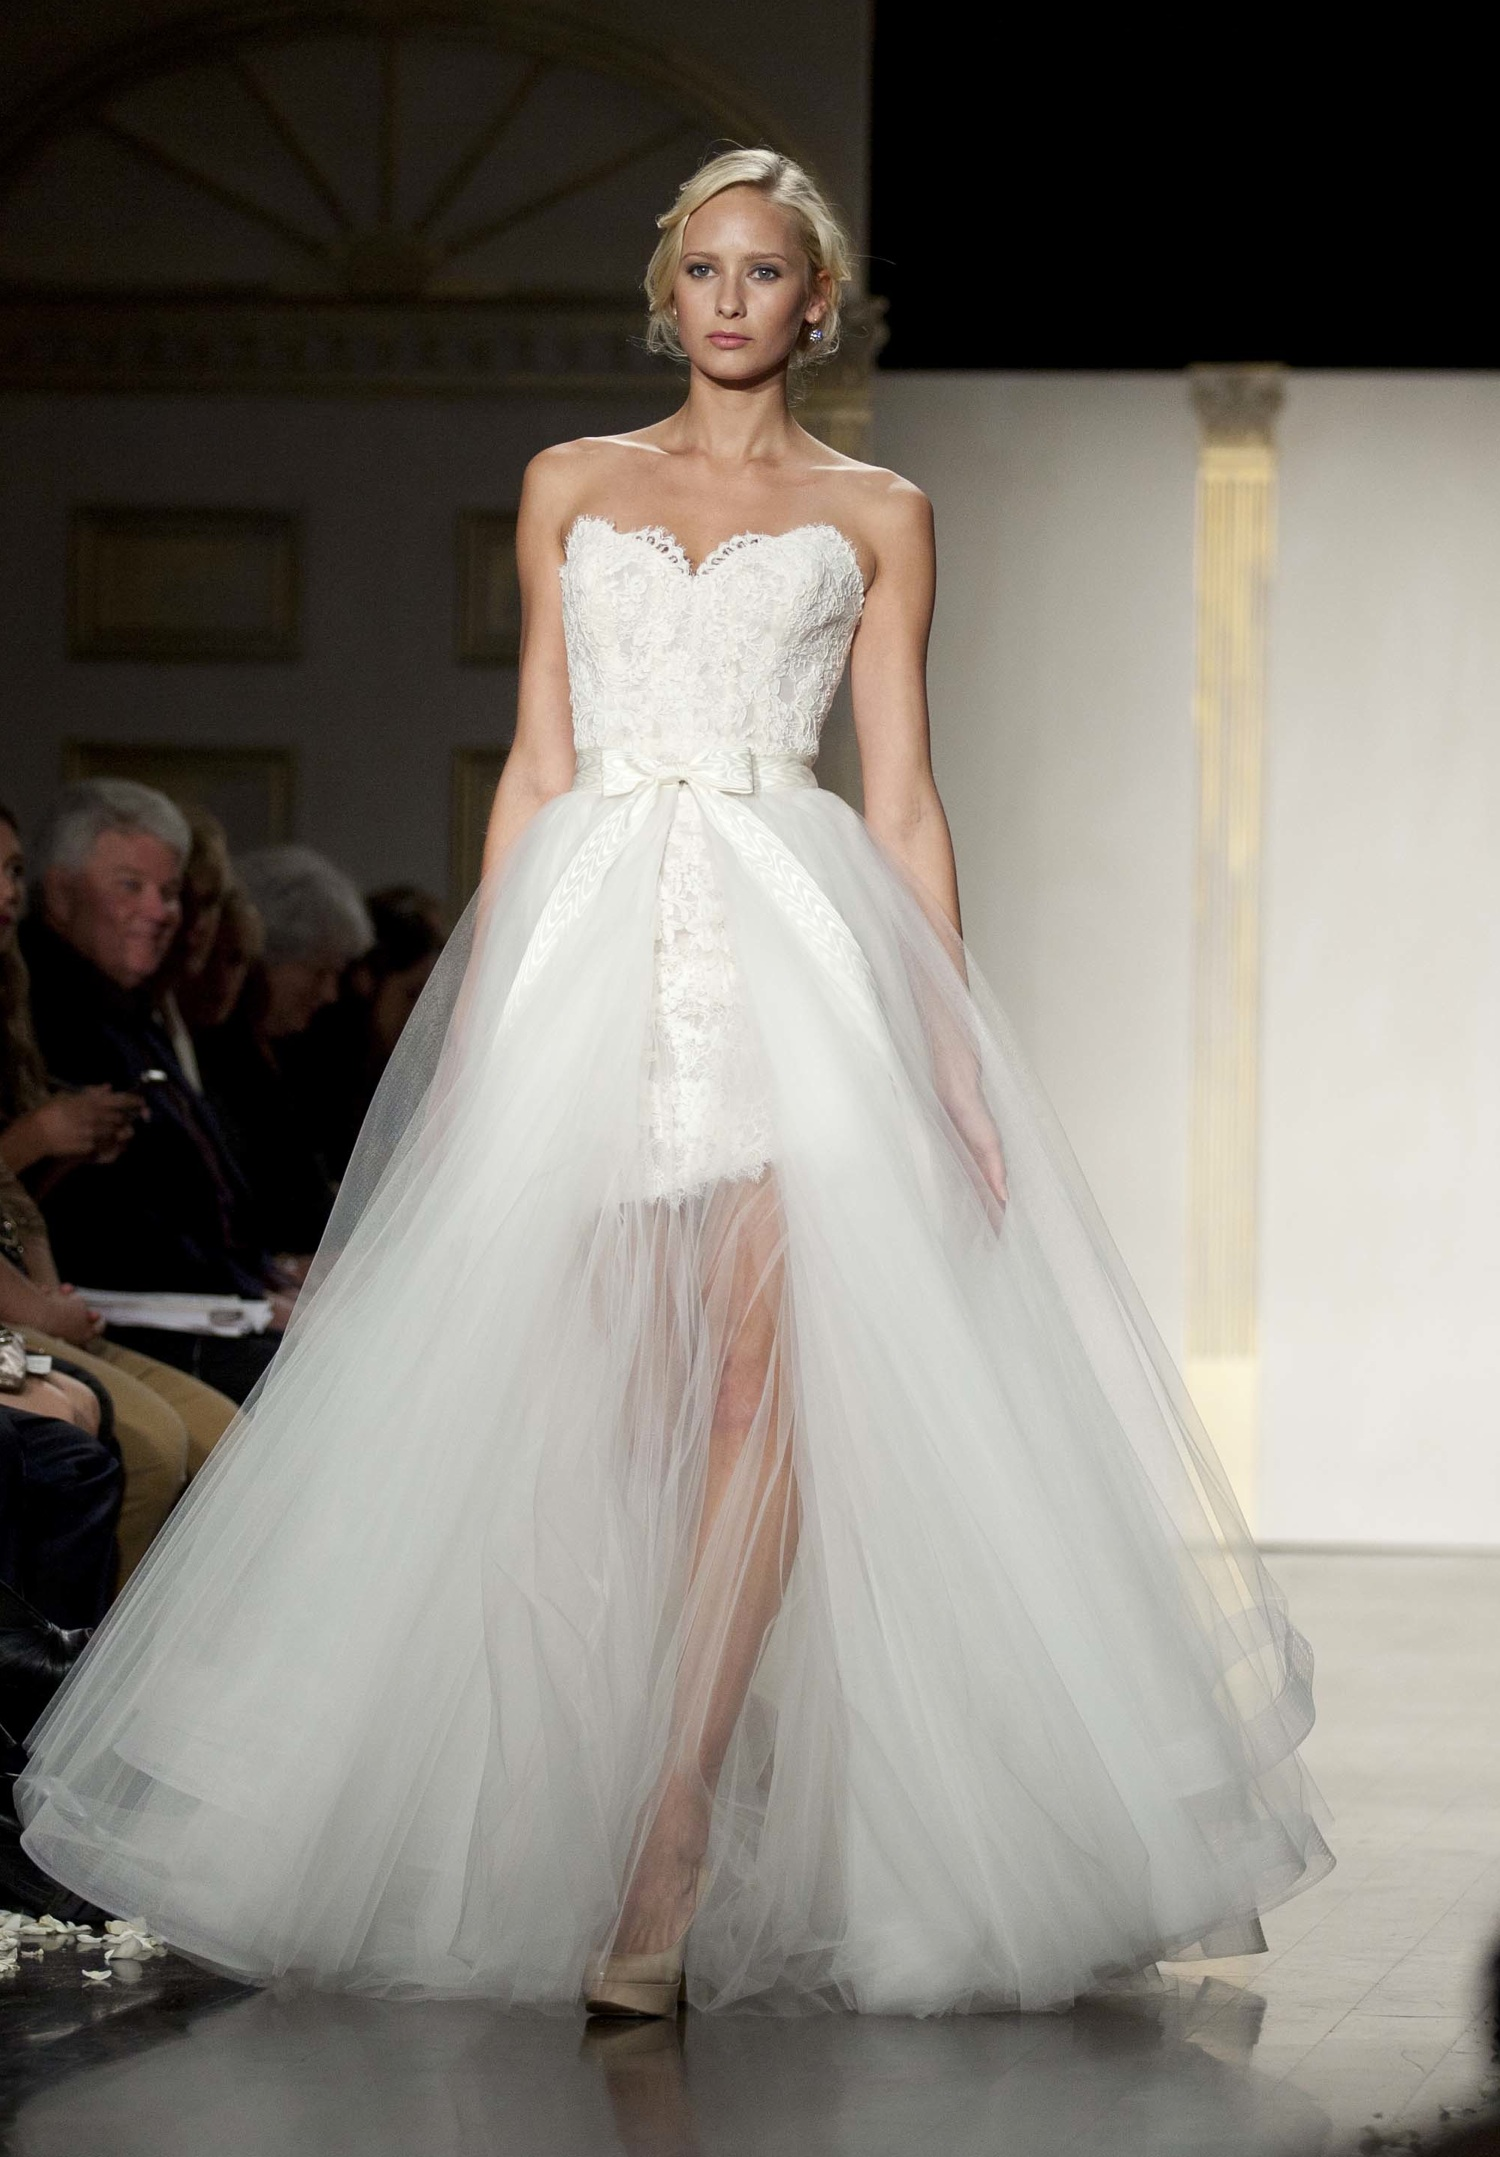 designer wedding dress hire designer wedding dress rental Designer Wedding Dress Hire Uk